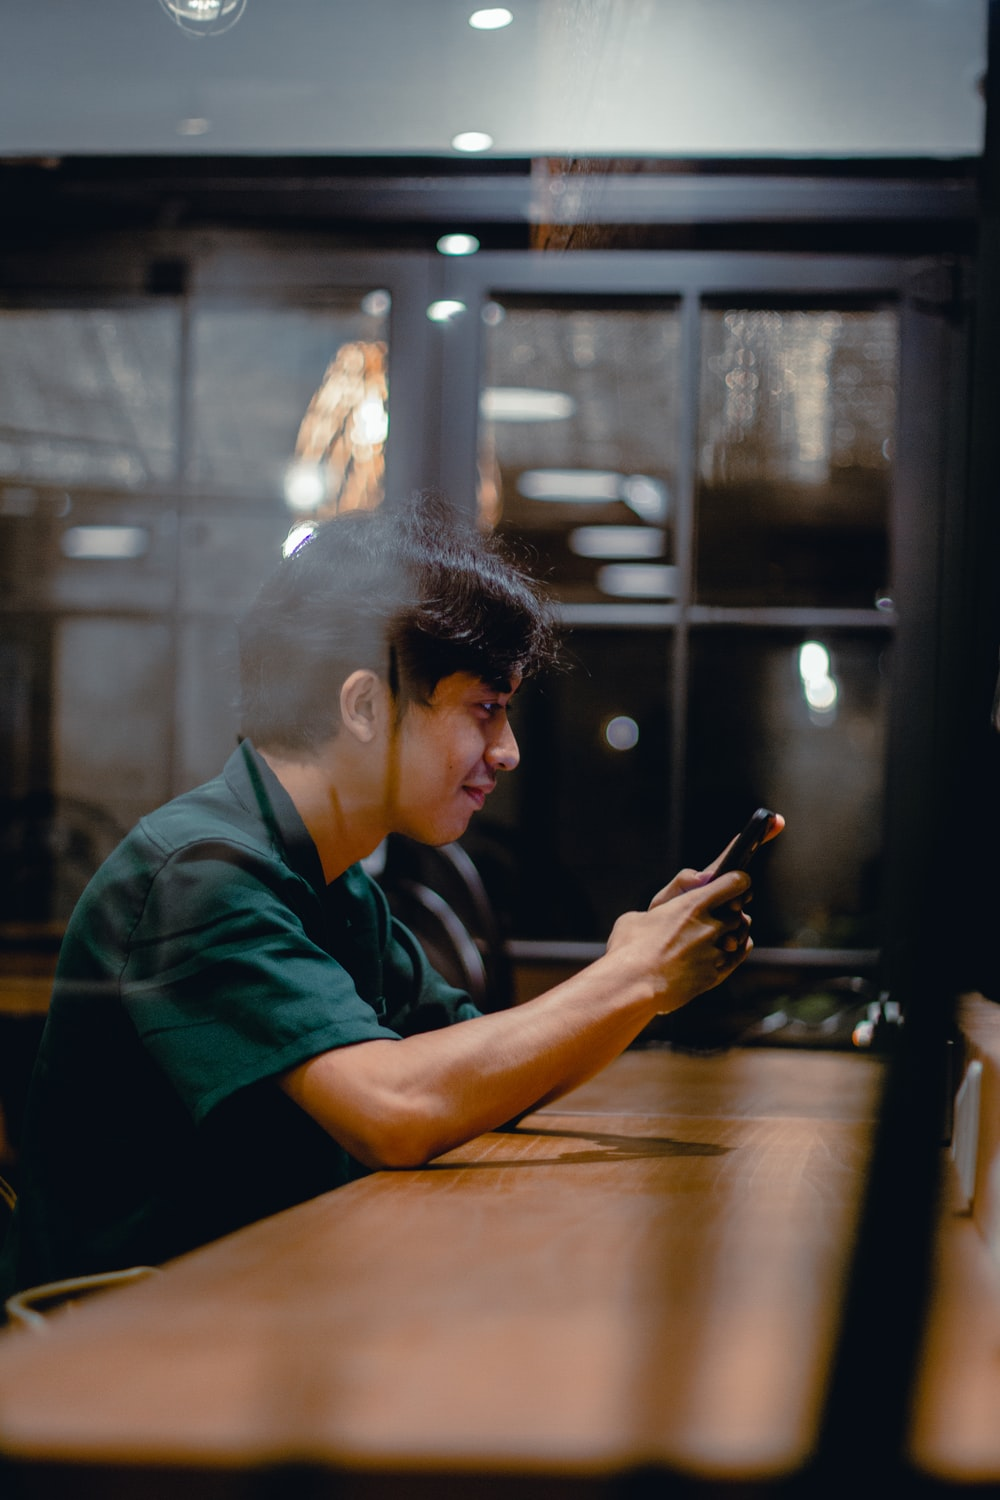 man in green polo shirt holding smartphone